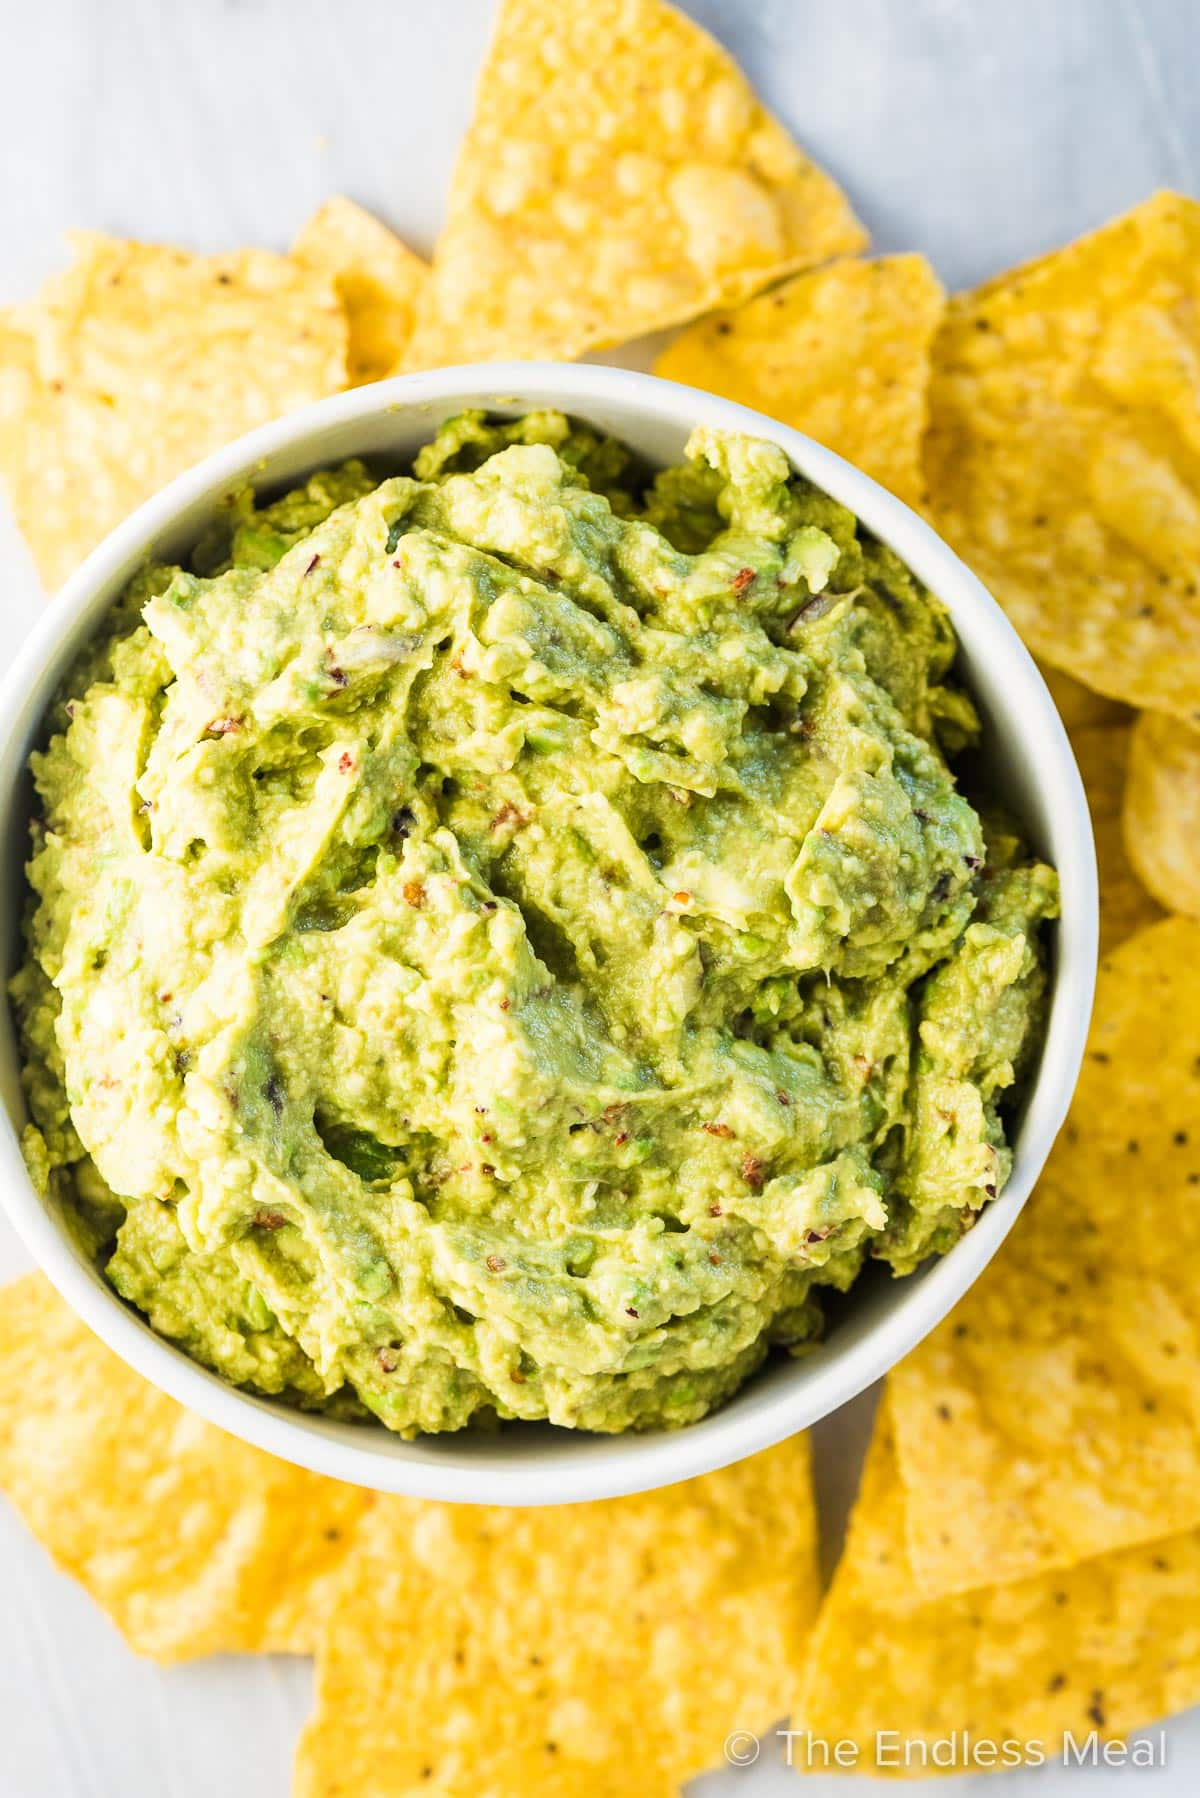 Looking down on a bowl of chipotle guacamole dip surrounded by yellow corn chips.